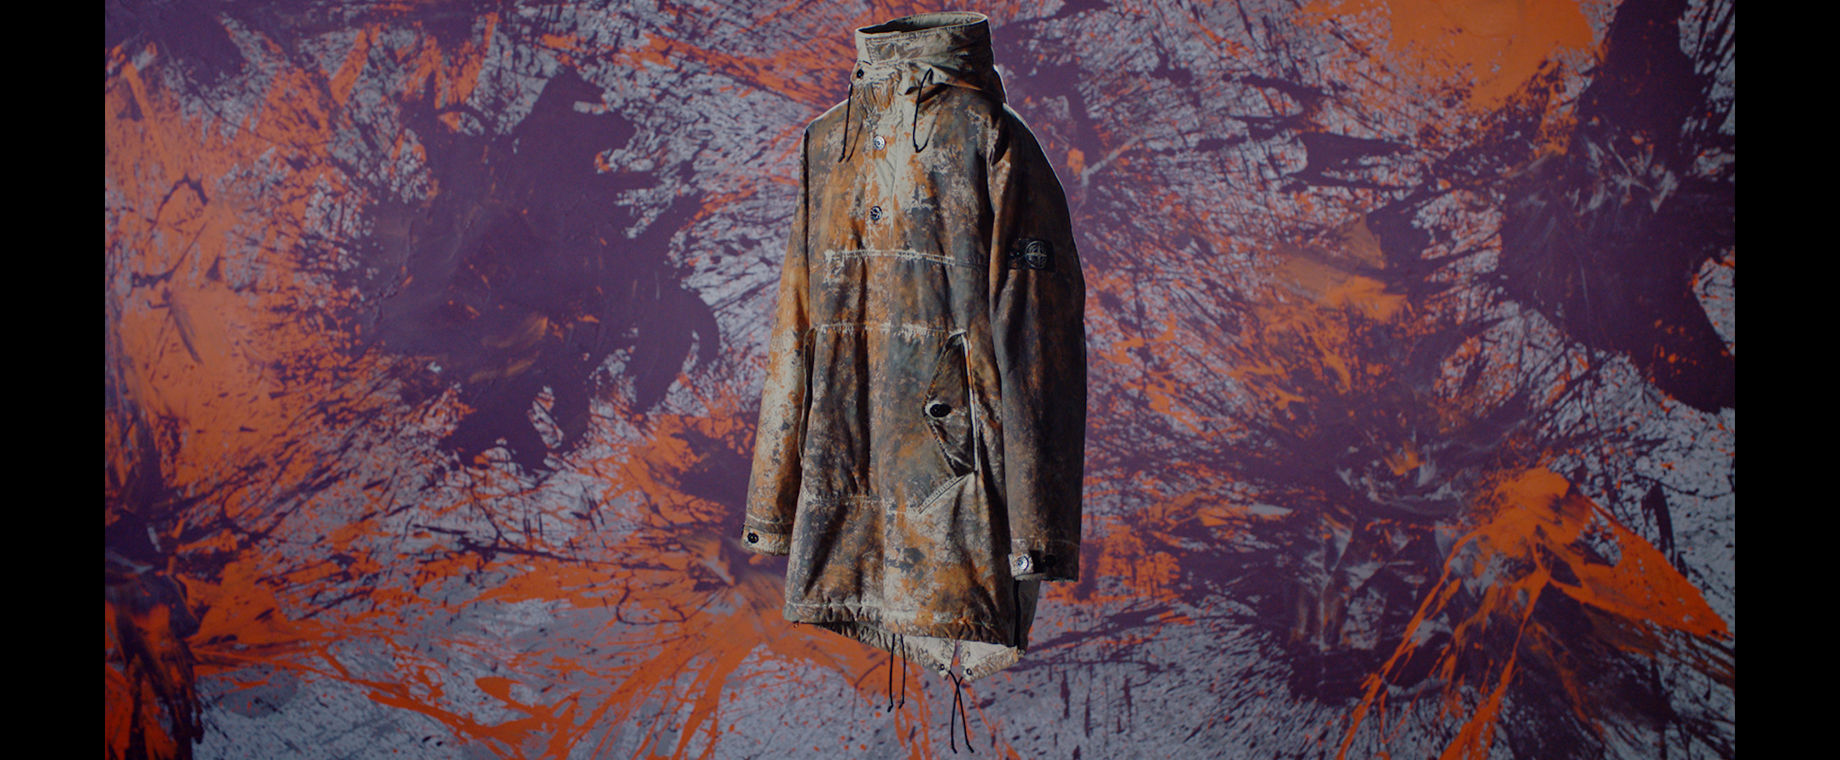 Camouflage print technical jacket with drawstring ties and a high collar, shown against abstract purple, grey, and red paint splatter background